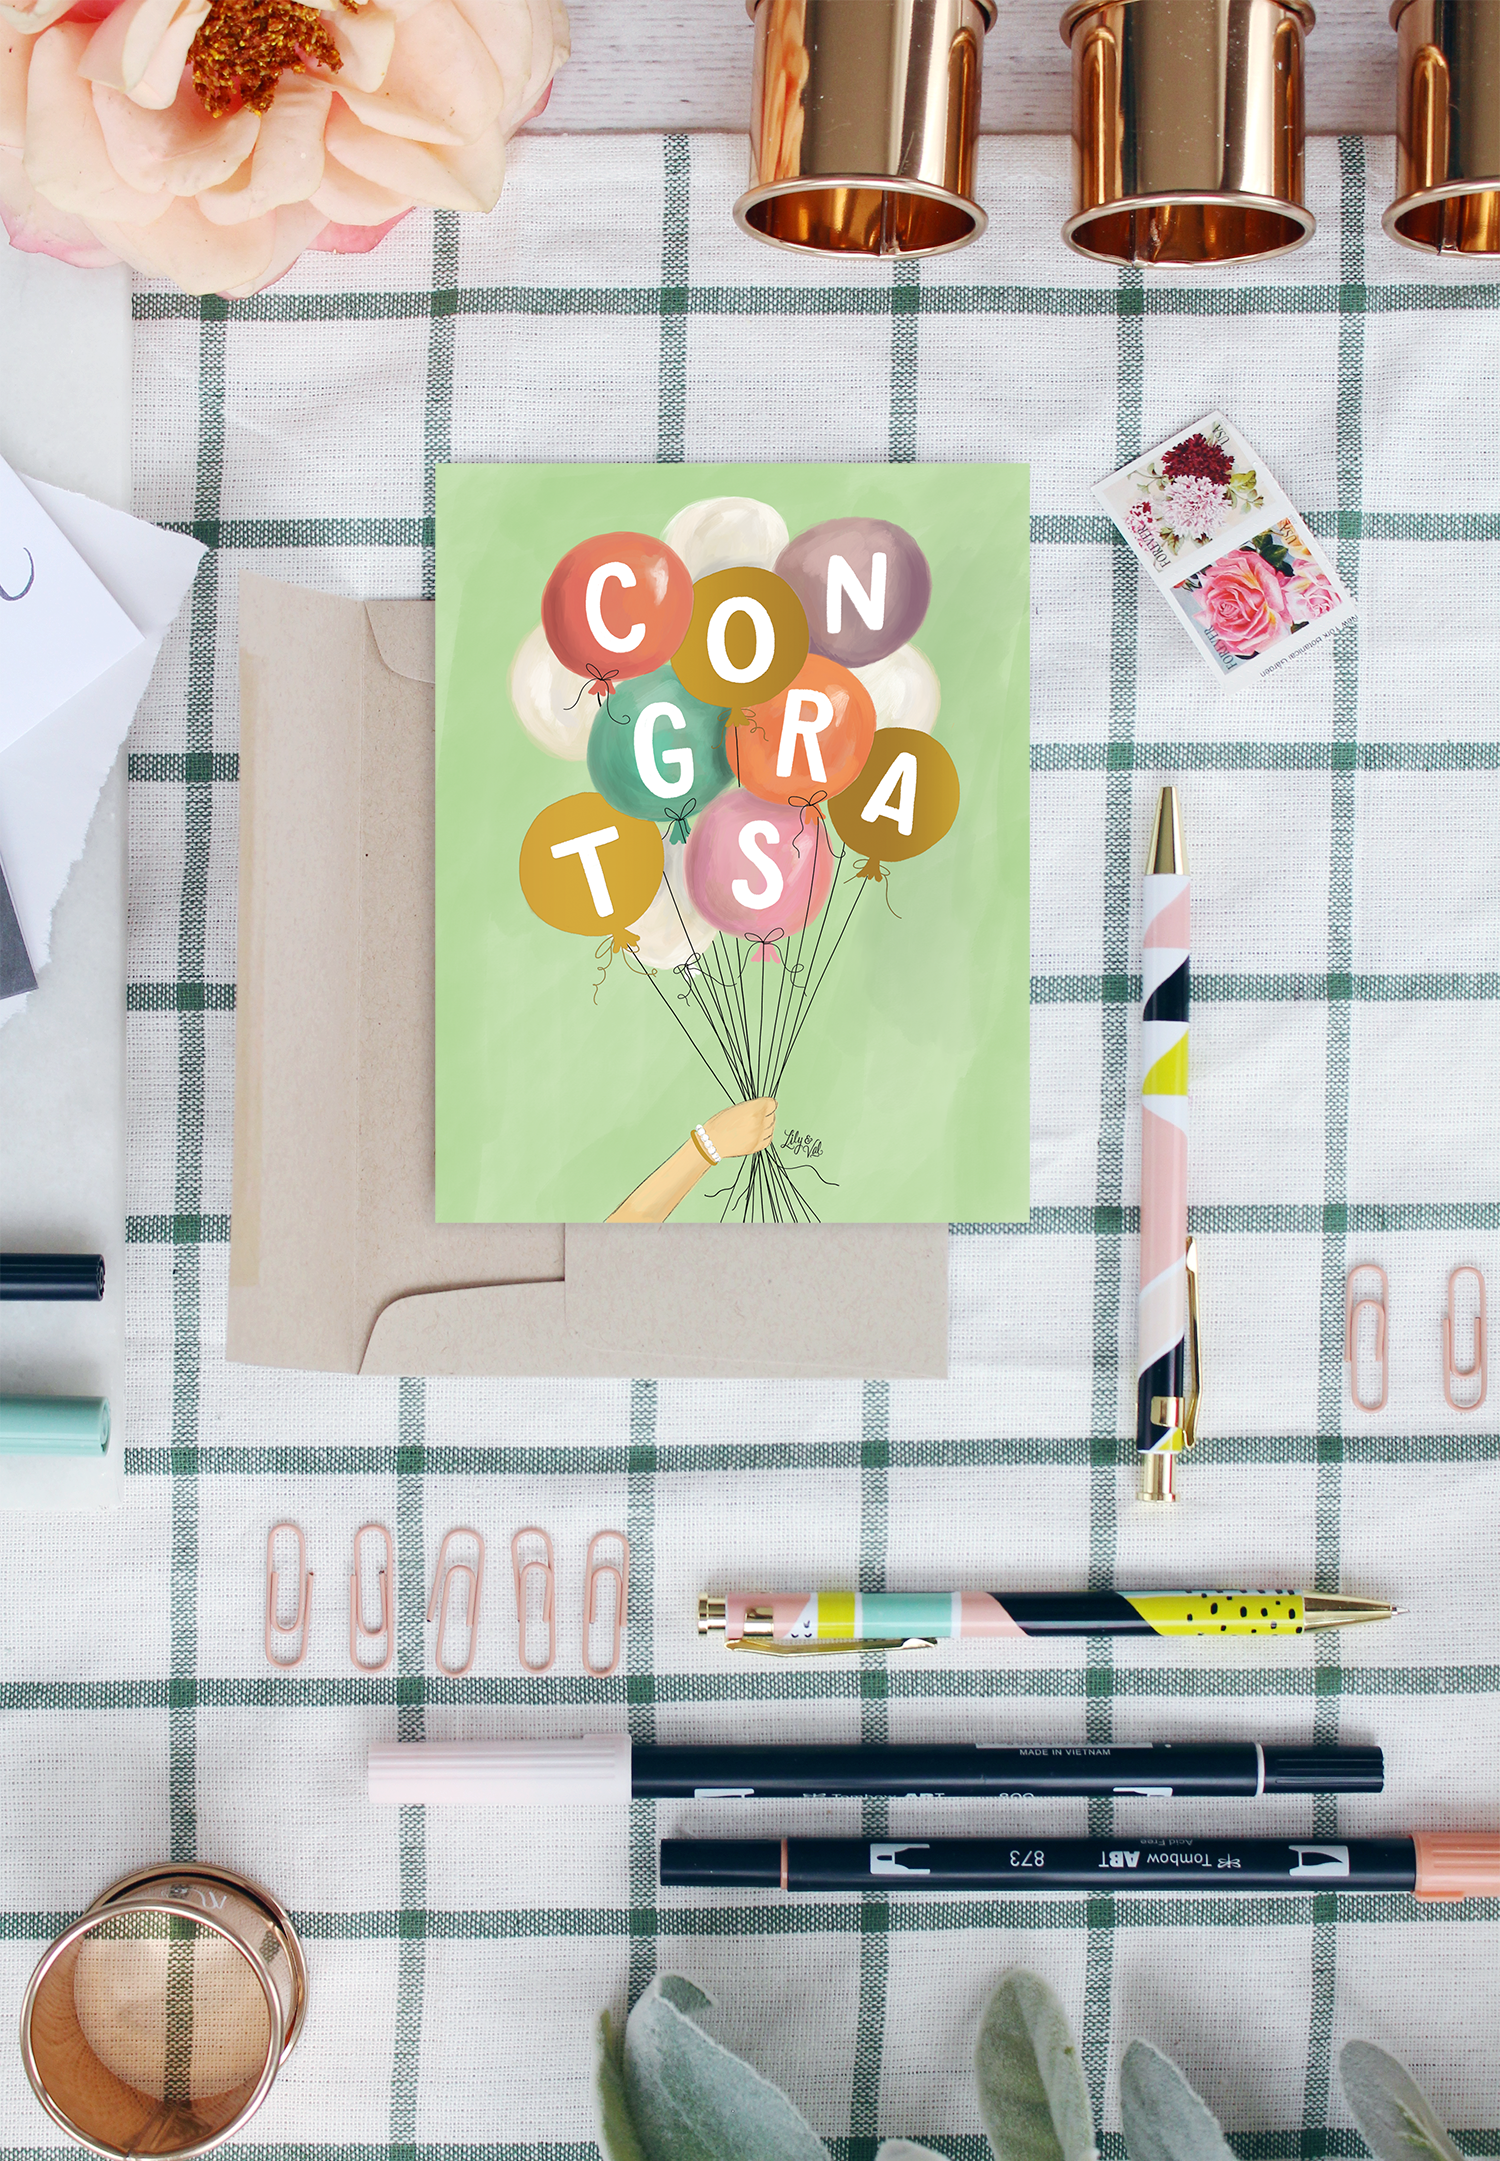 Send a letter in our new gold foiled, hand-drawn congrats card